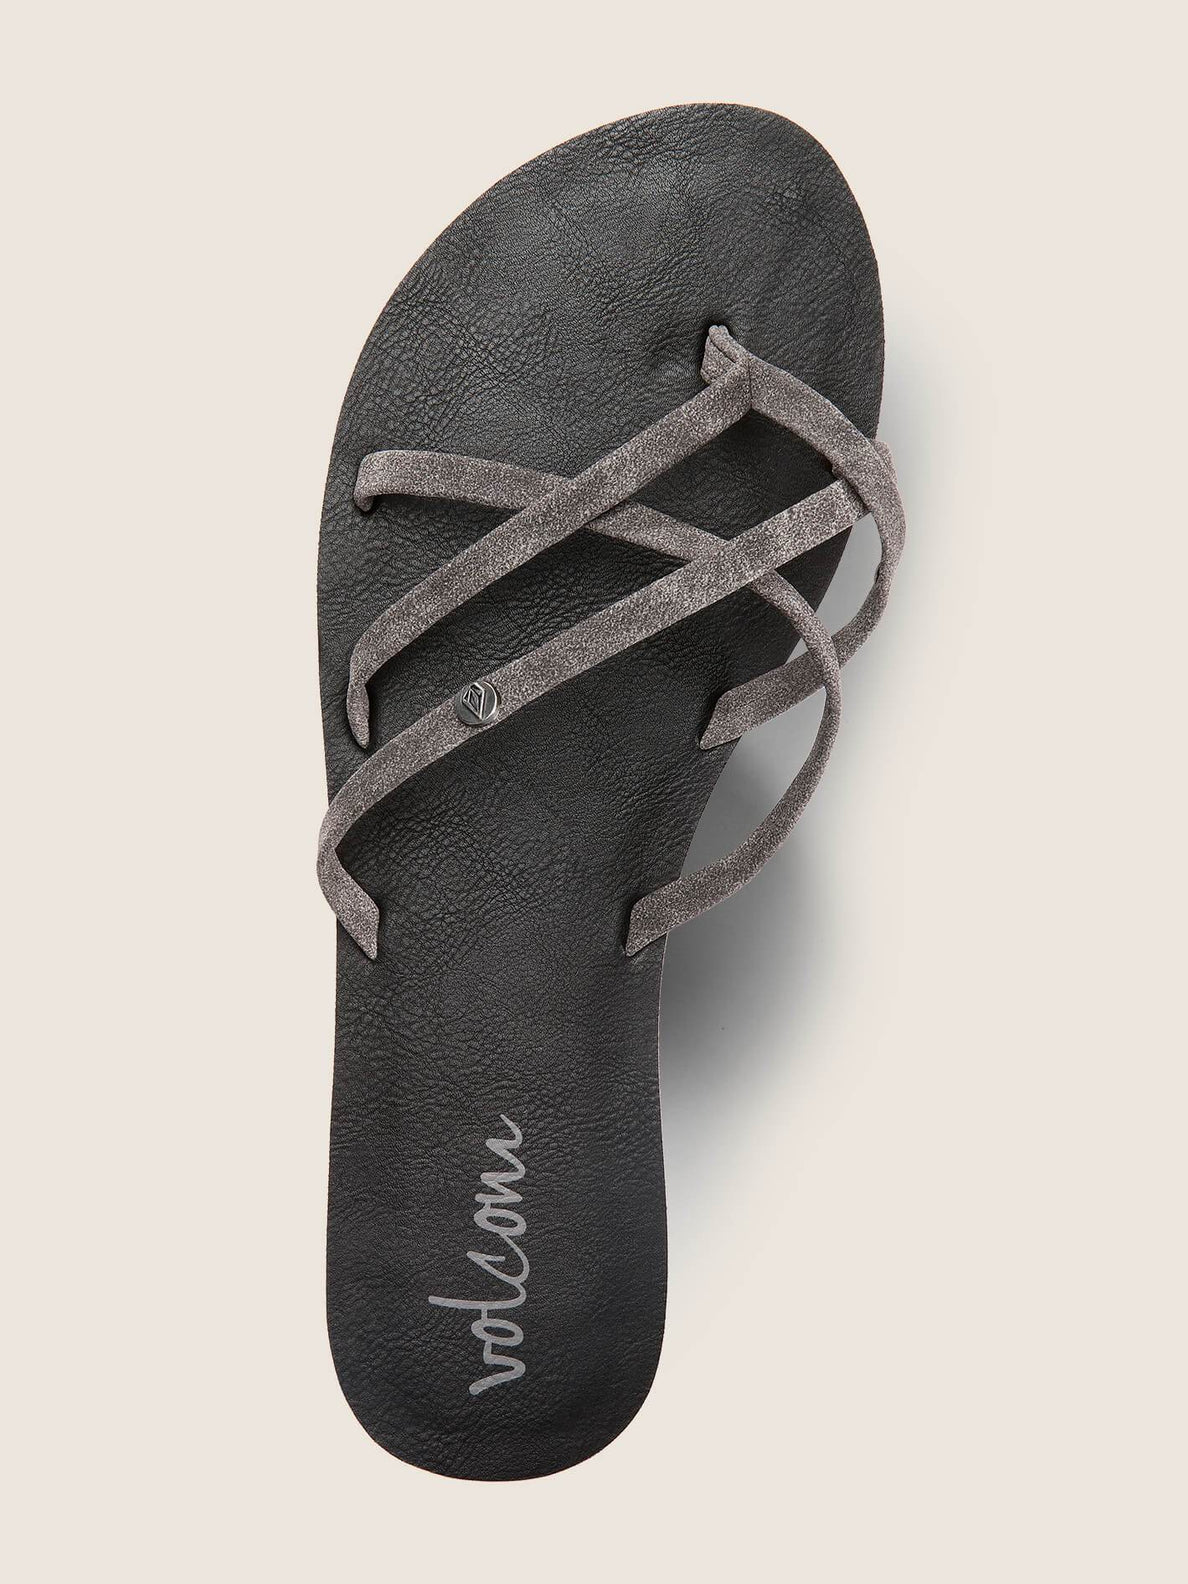 New School Sandals In Grey, Alternate View